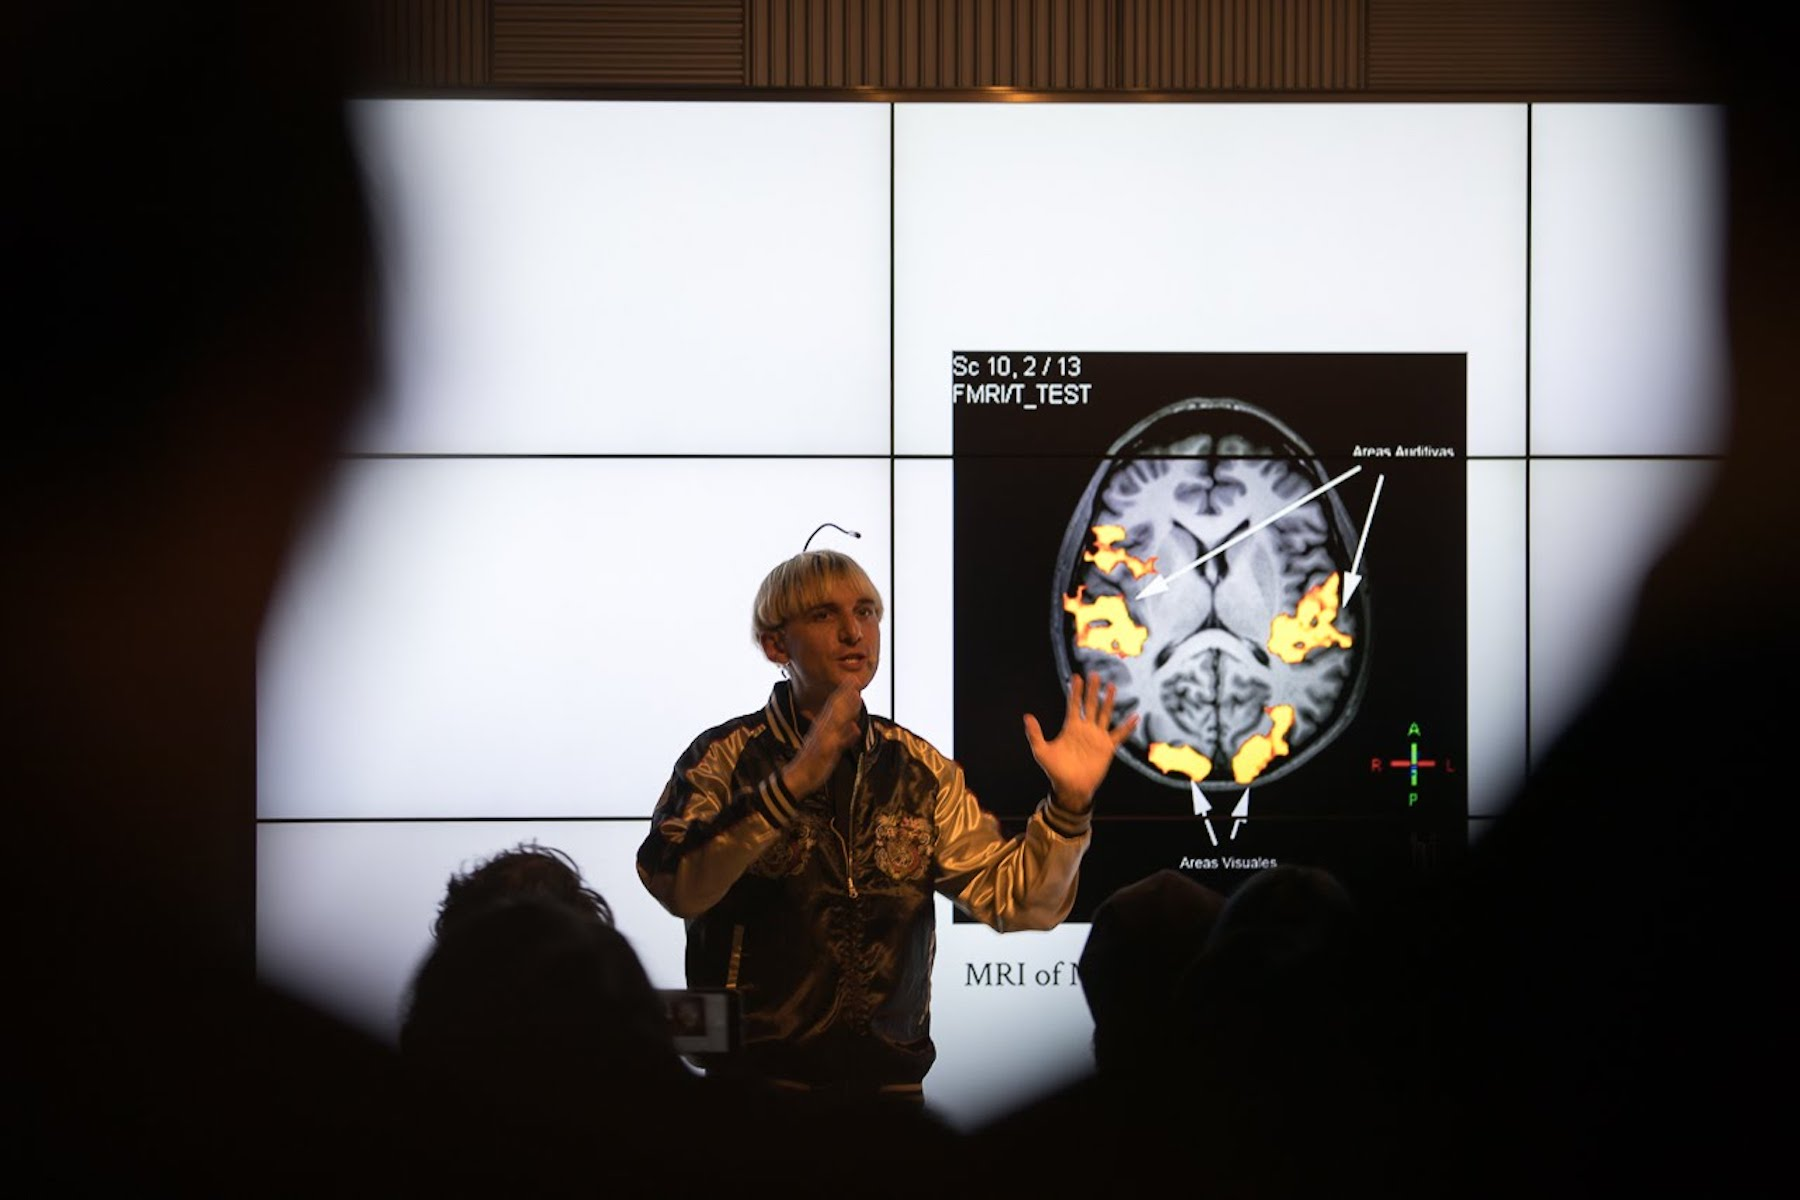 Neil Harbisson and his extrasensory science